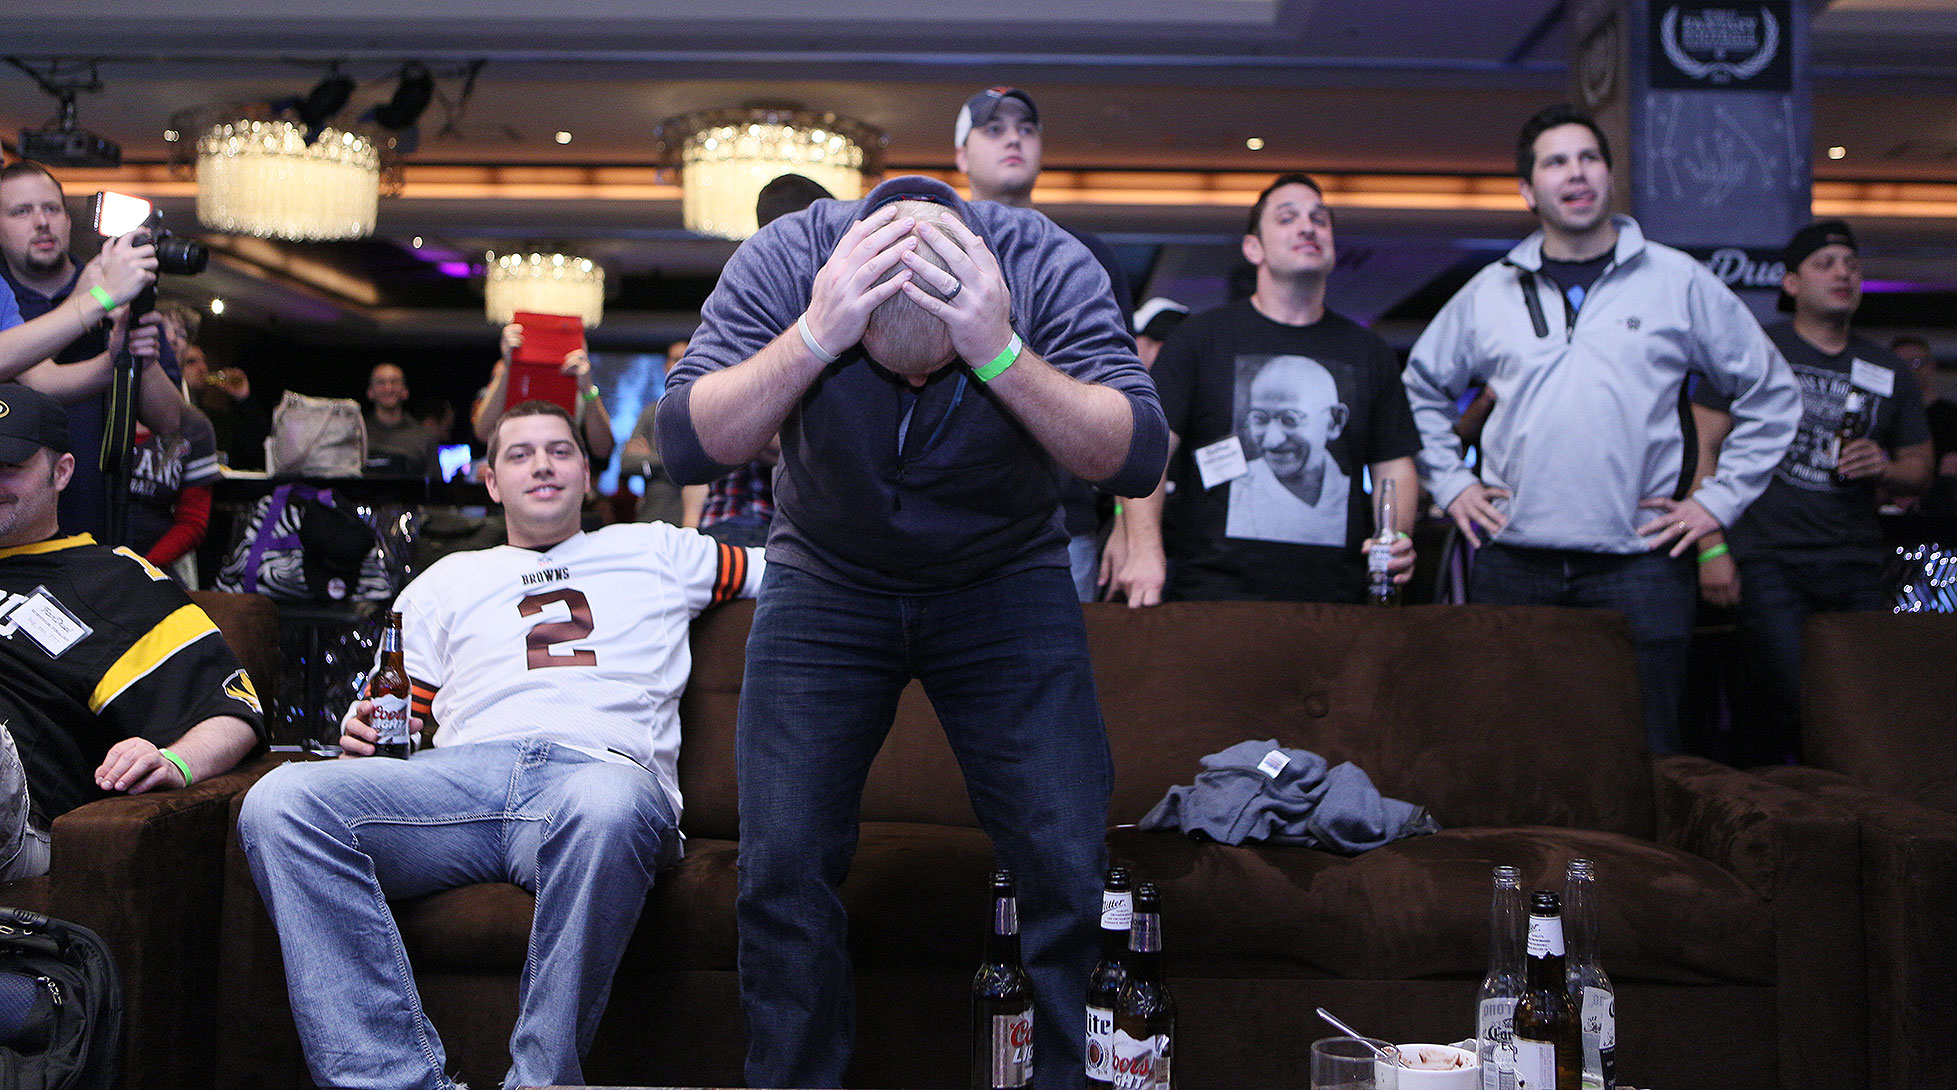 DFS almost certainly helped inflate the ratings to record highs last season, and legislative action limiting FanDuel and DraftKings in many states, plus the end of the daily ad blitz has cut into that boost this year. Fans who have money riding on certain games are more engaged and will watch more.